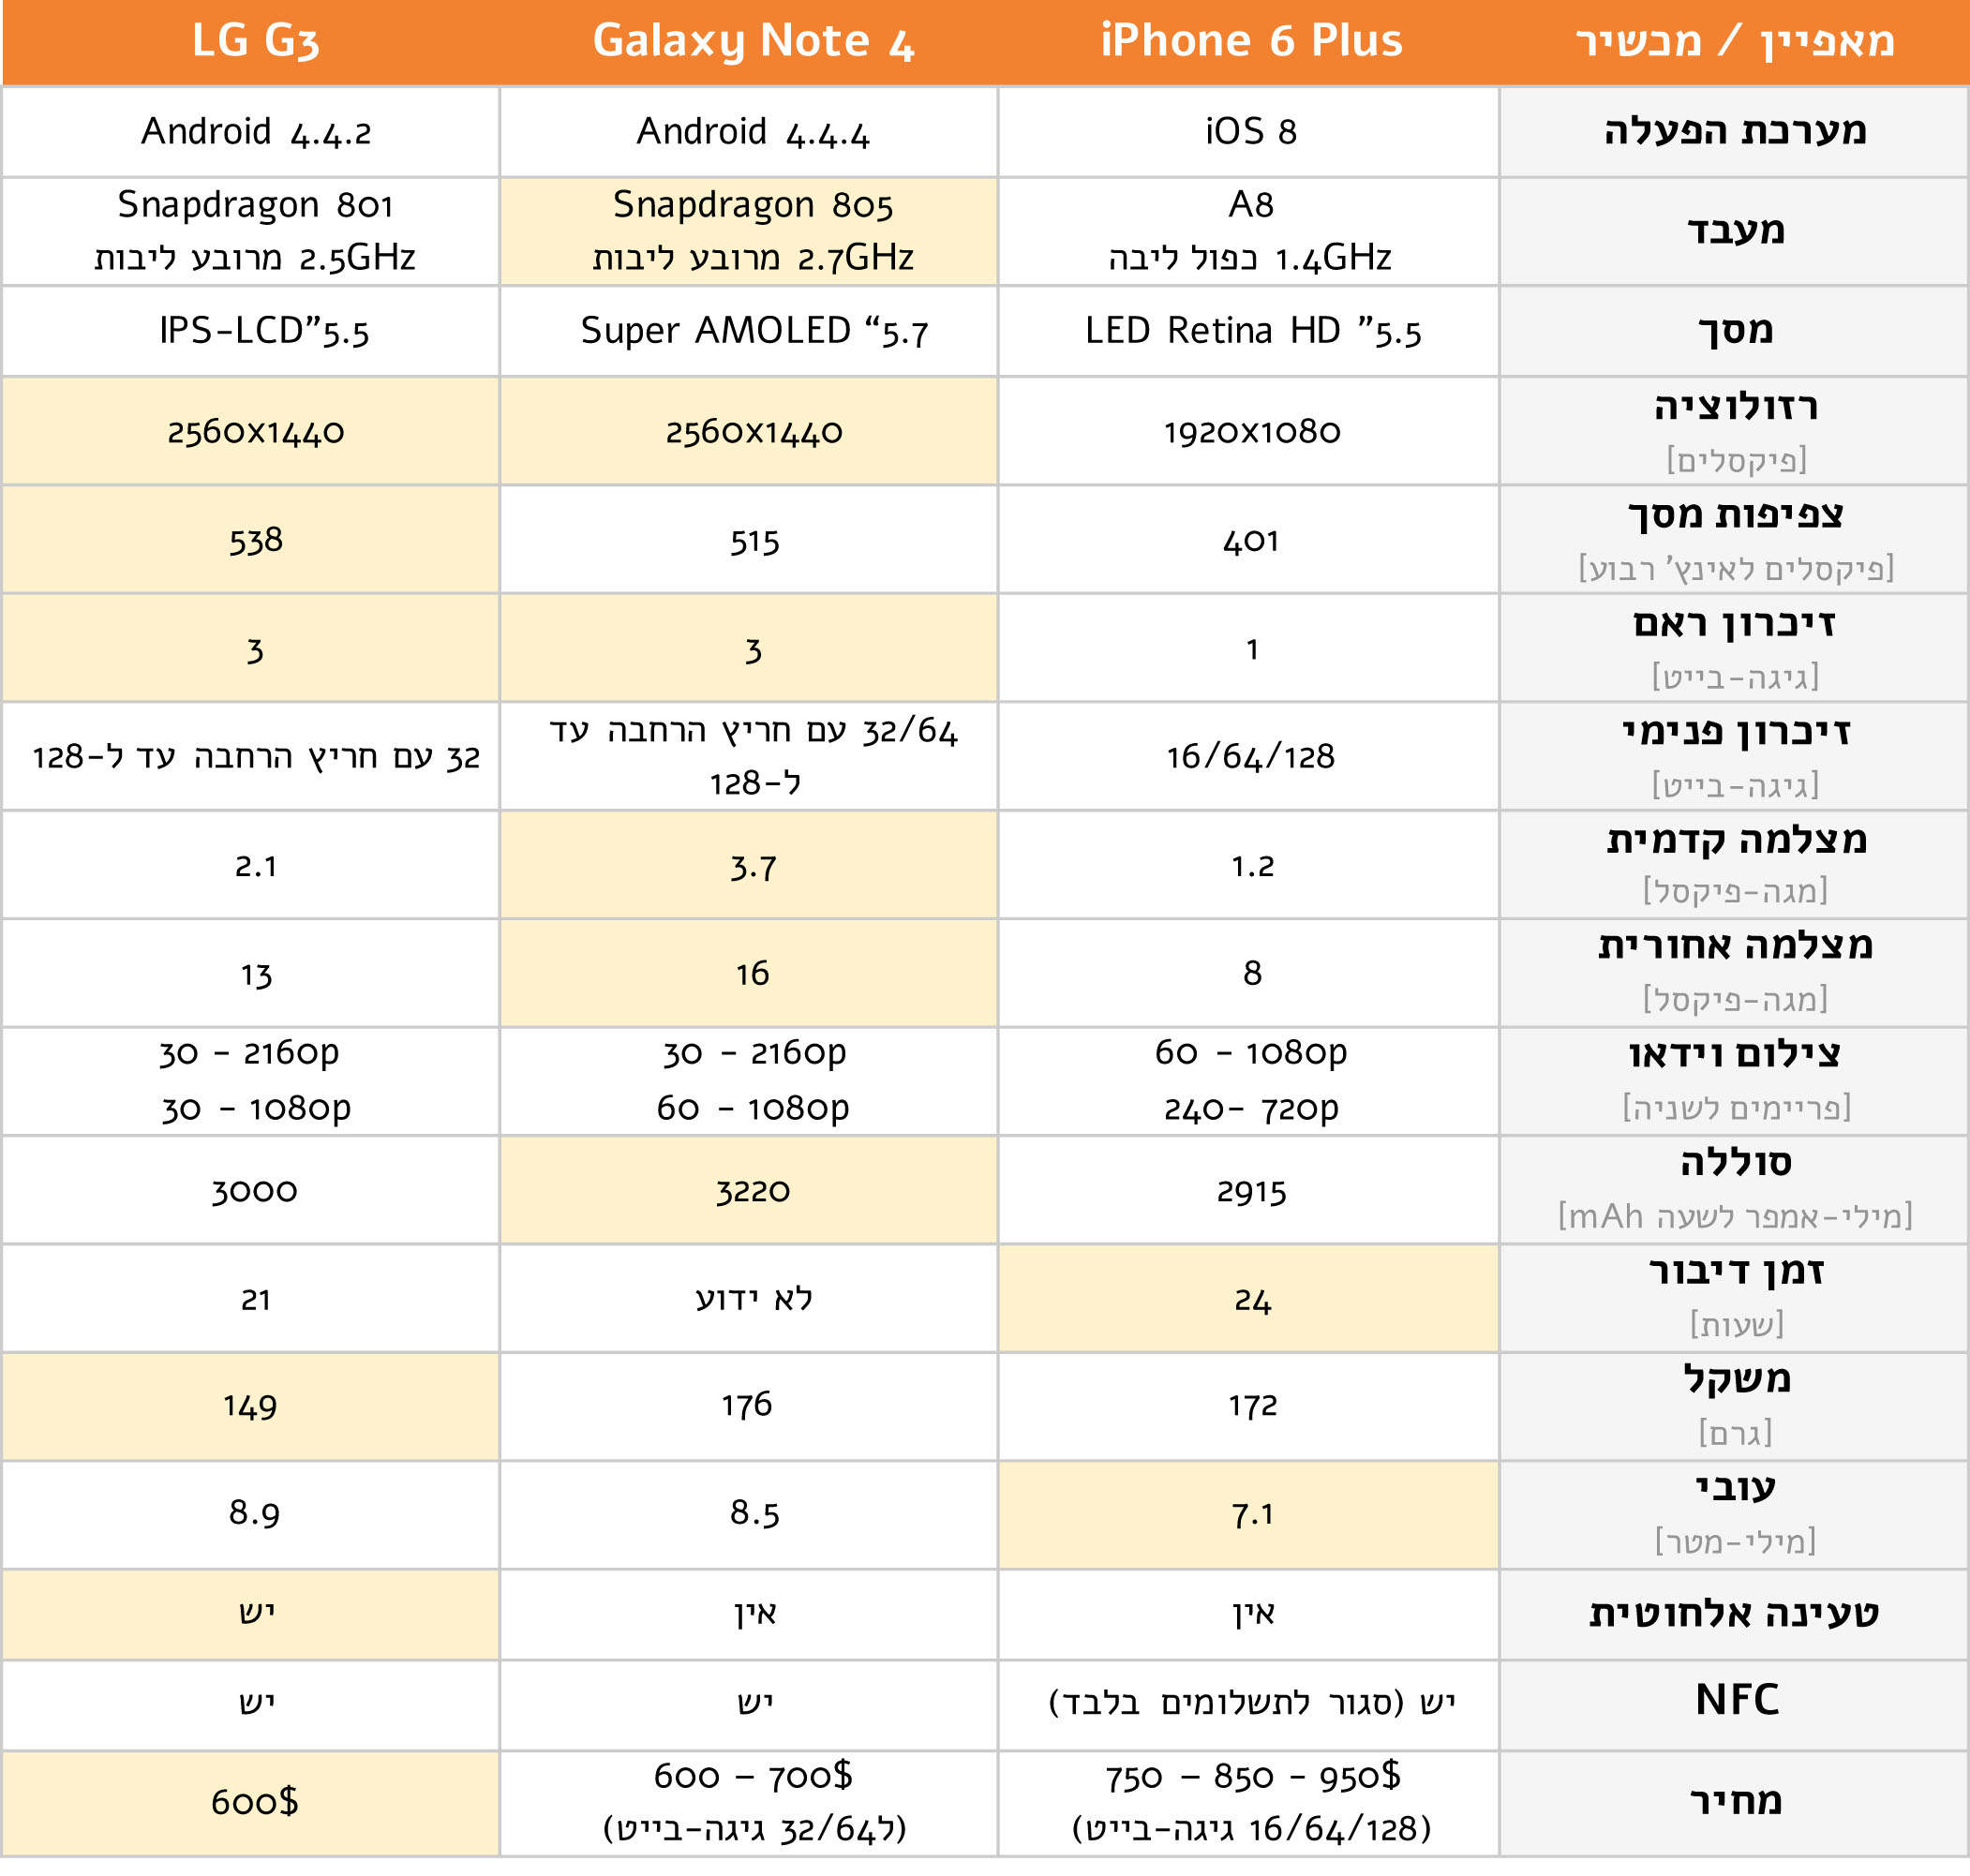 Compare features between iPhone 6 Plus and leading devices